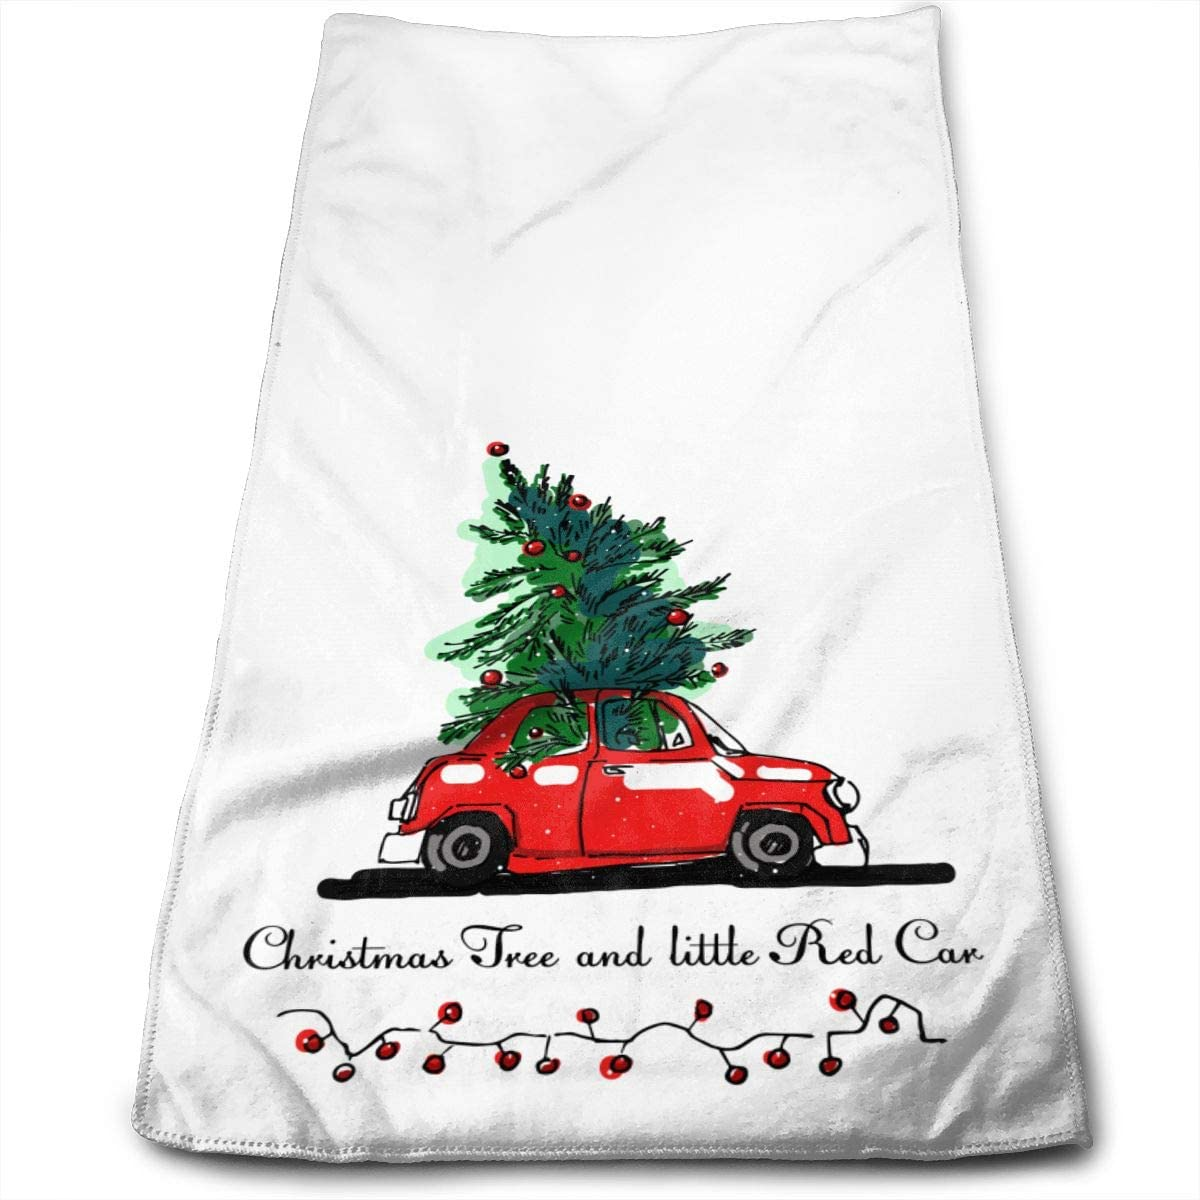 Christmas Tree and Little Red Car Hand Towels for Bathroom,Swimming,Yoga,Gym Soft Absorbent Microfiber Unisex 27.56 X 11.81 in Cartoon Xmas Pine Tree Small Bath Towels